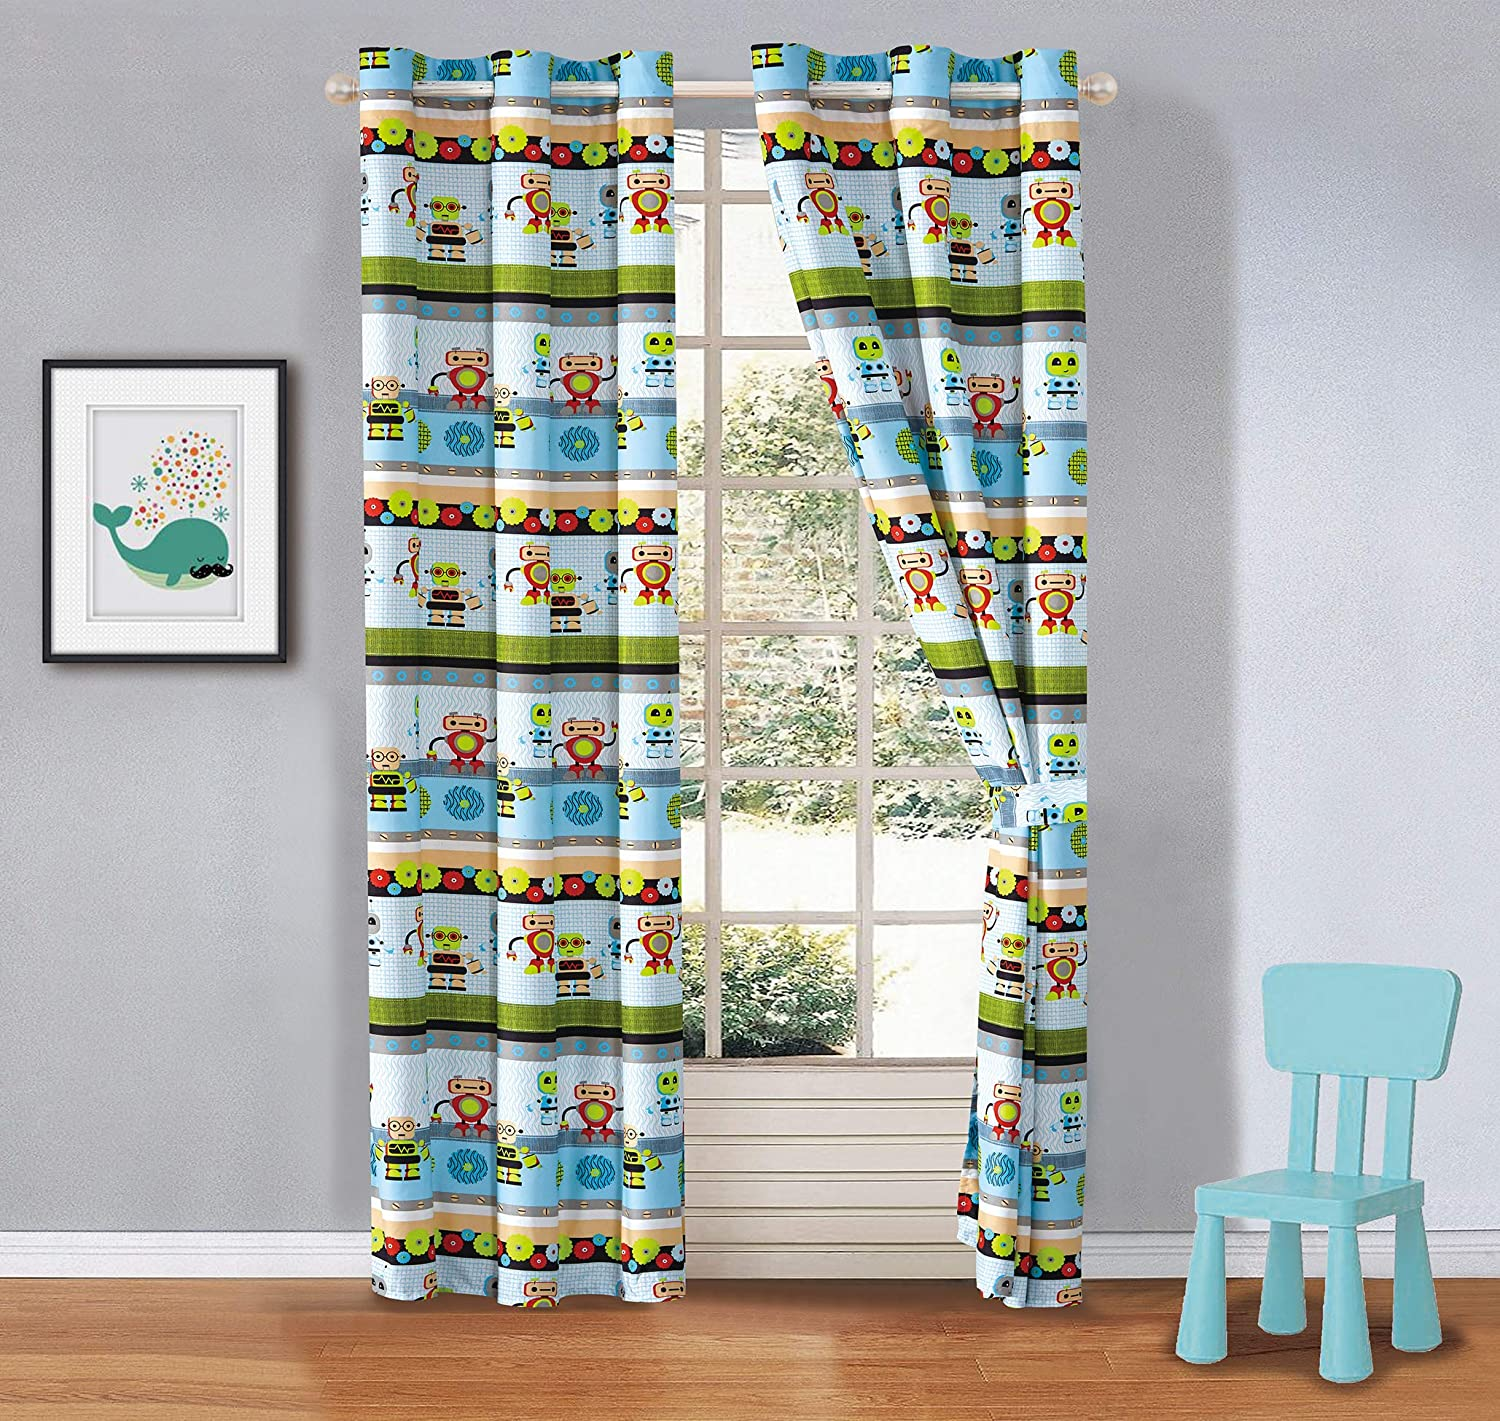 2 Panel Curtain Set Robot Android Fantasy Machine Multi-Color for Kids